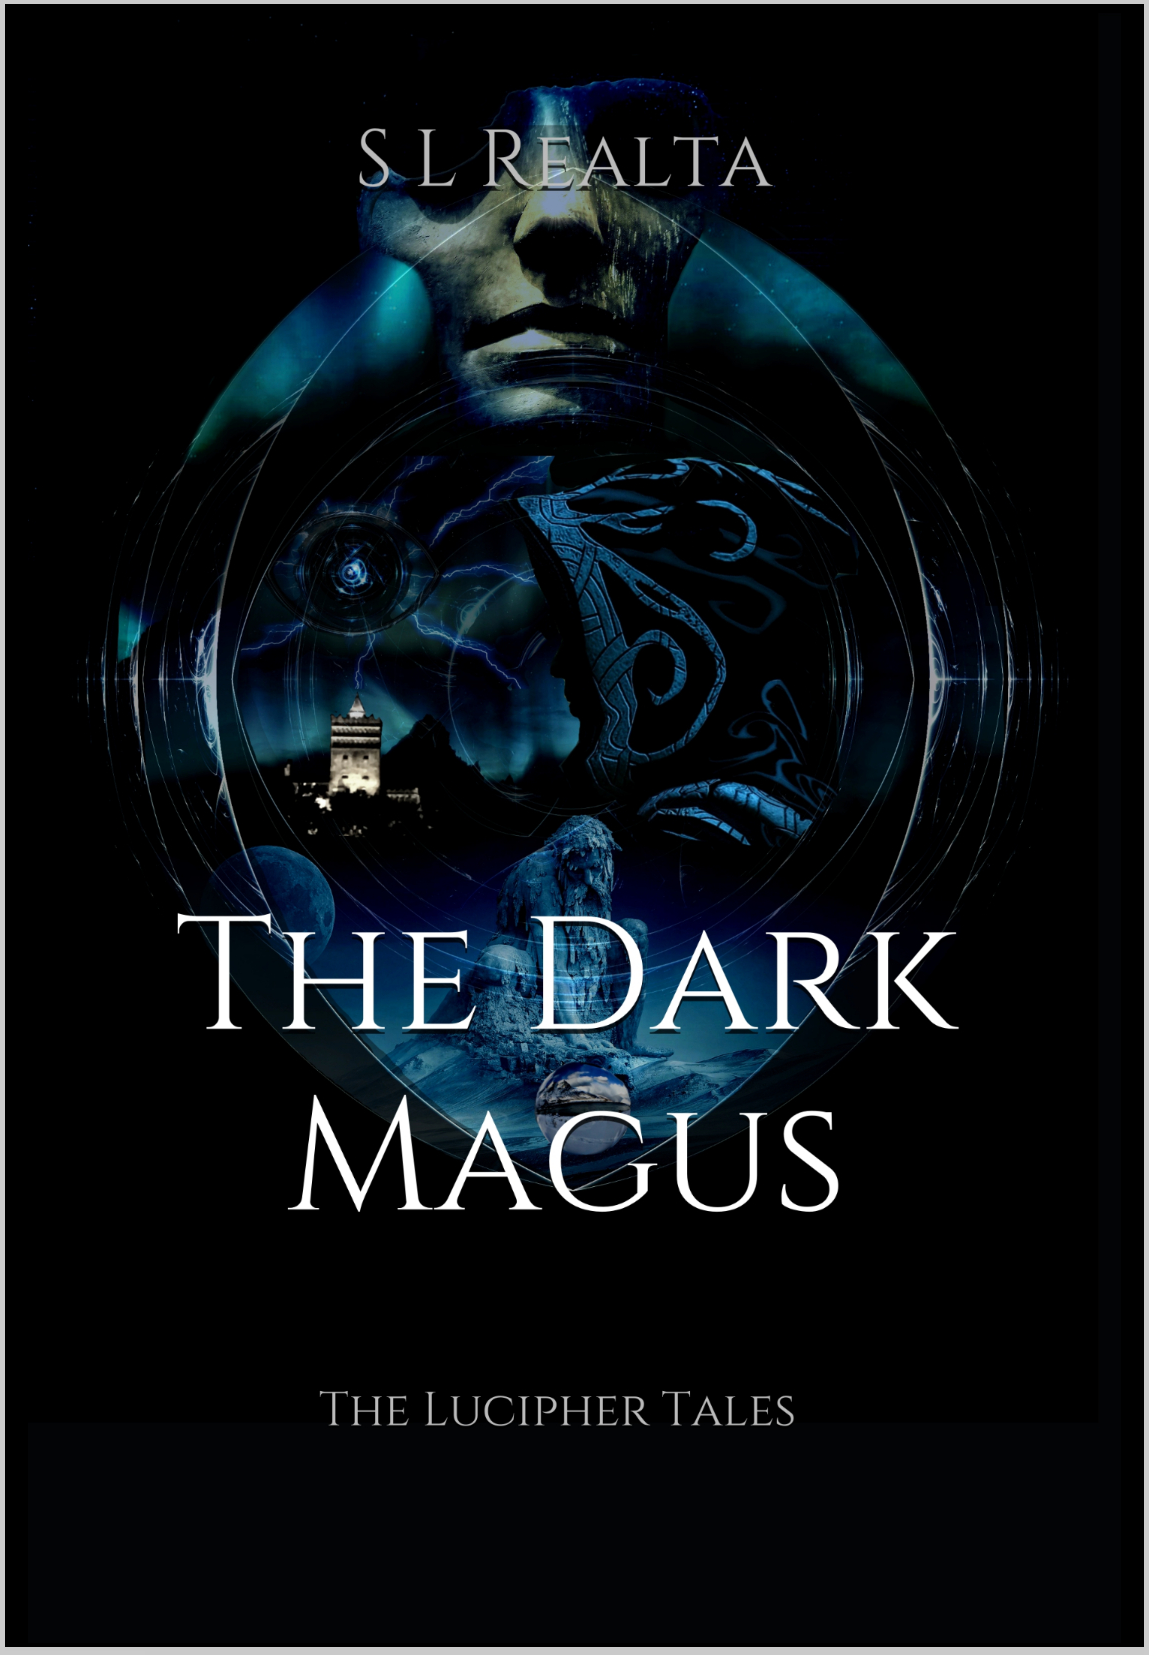 THE DARK MAGUS COVER 2020 SILVER WEBSIZE (1)